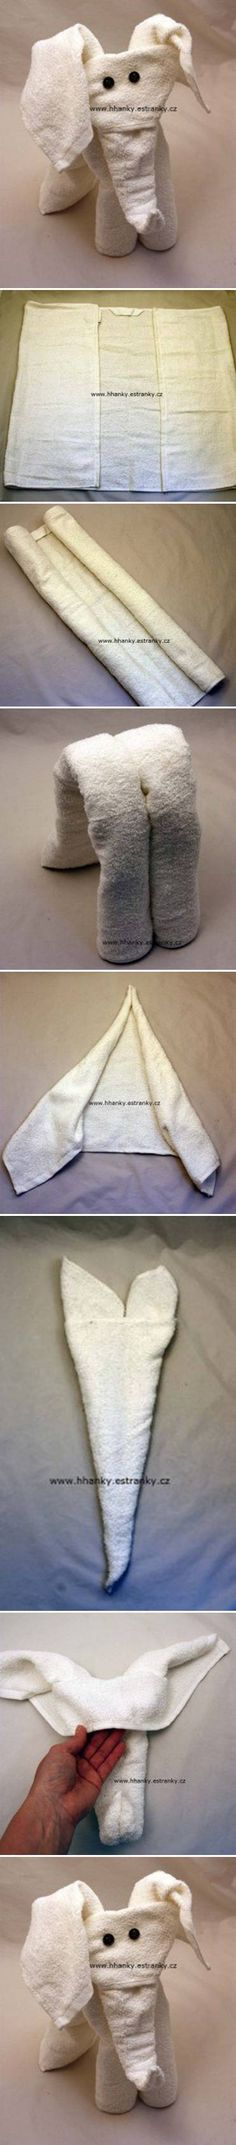 DIY Easy Towel Elephant